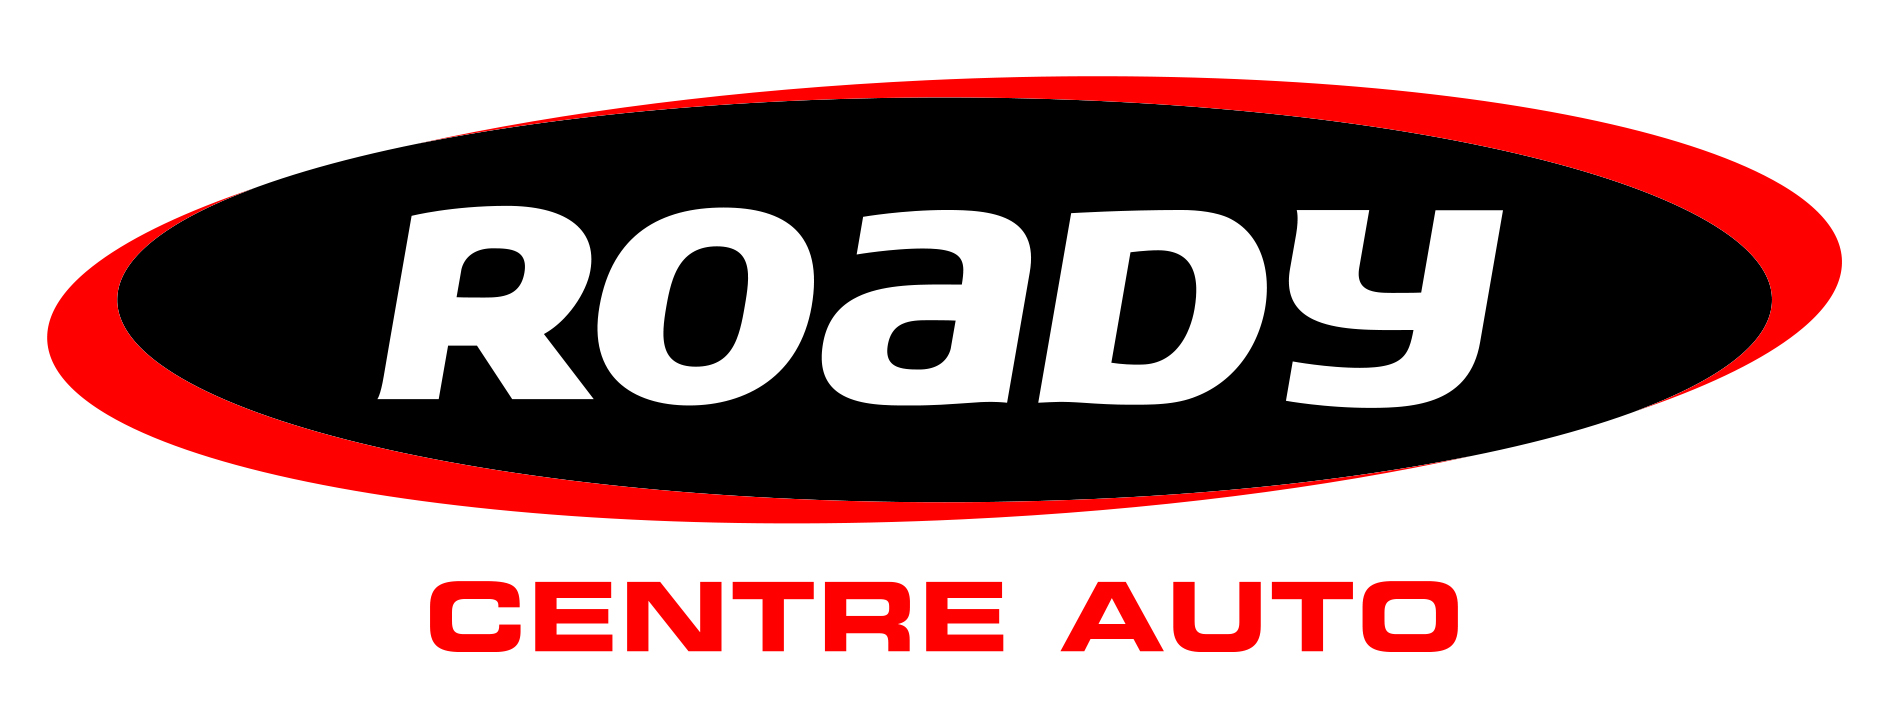 LOGO ROADY + CENTRE AUTO